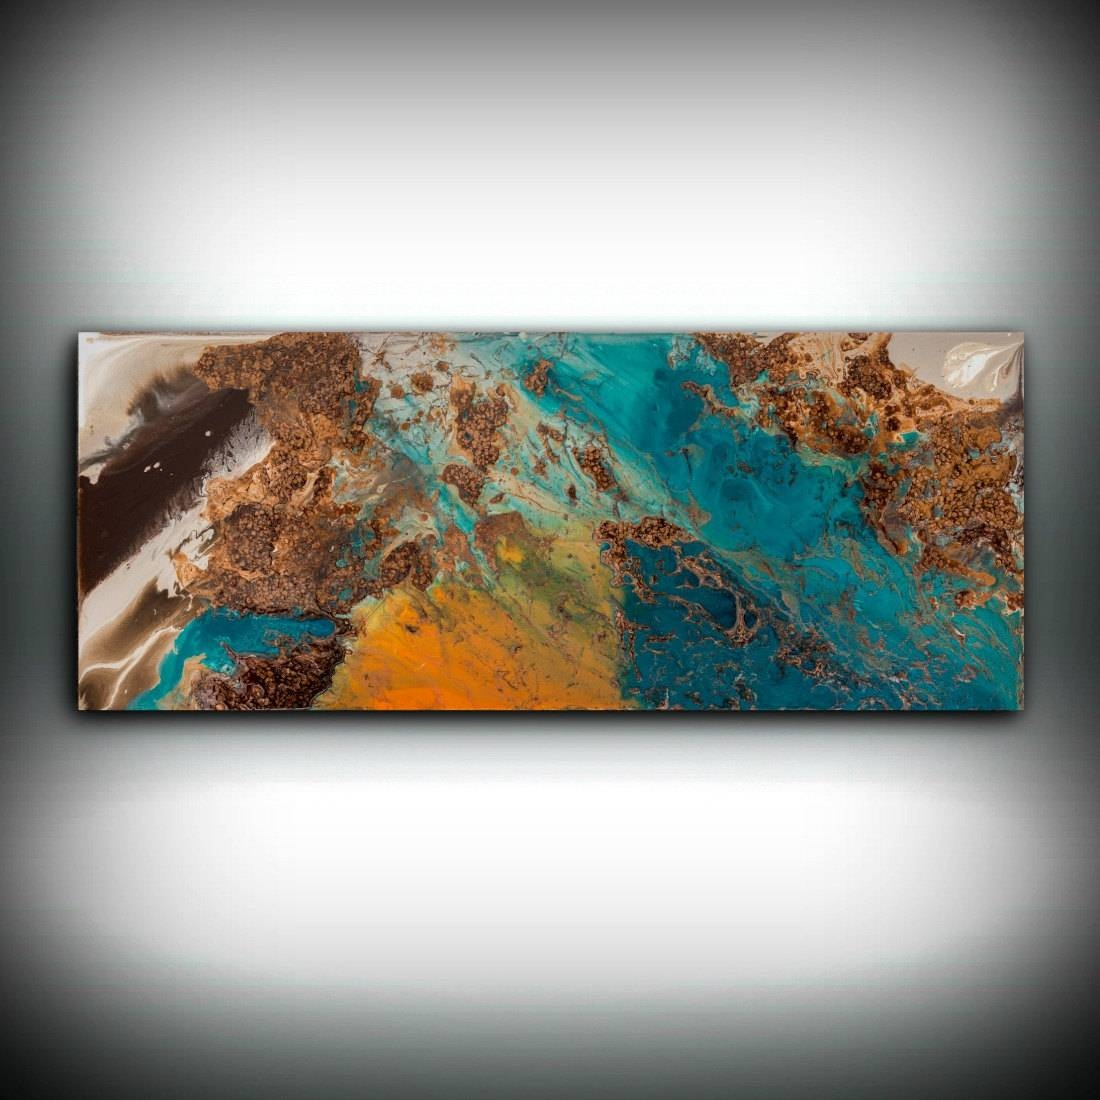 Wall Art Designs: Amazing Wall Art Sale Framed On Sale Art On Sale Regarding Recent Turquoise And Brown Wall Art (View 23 of 25)